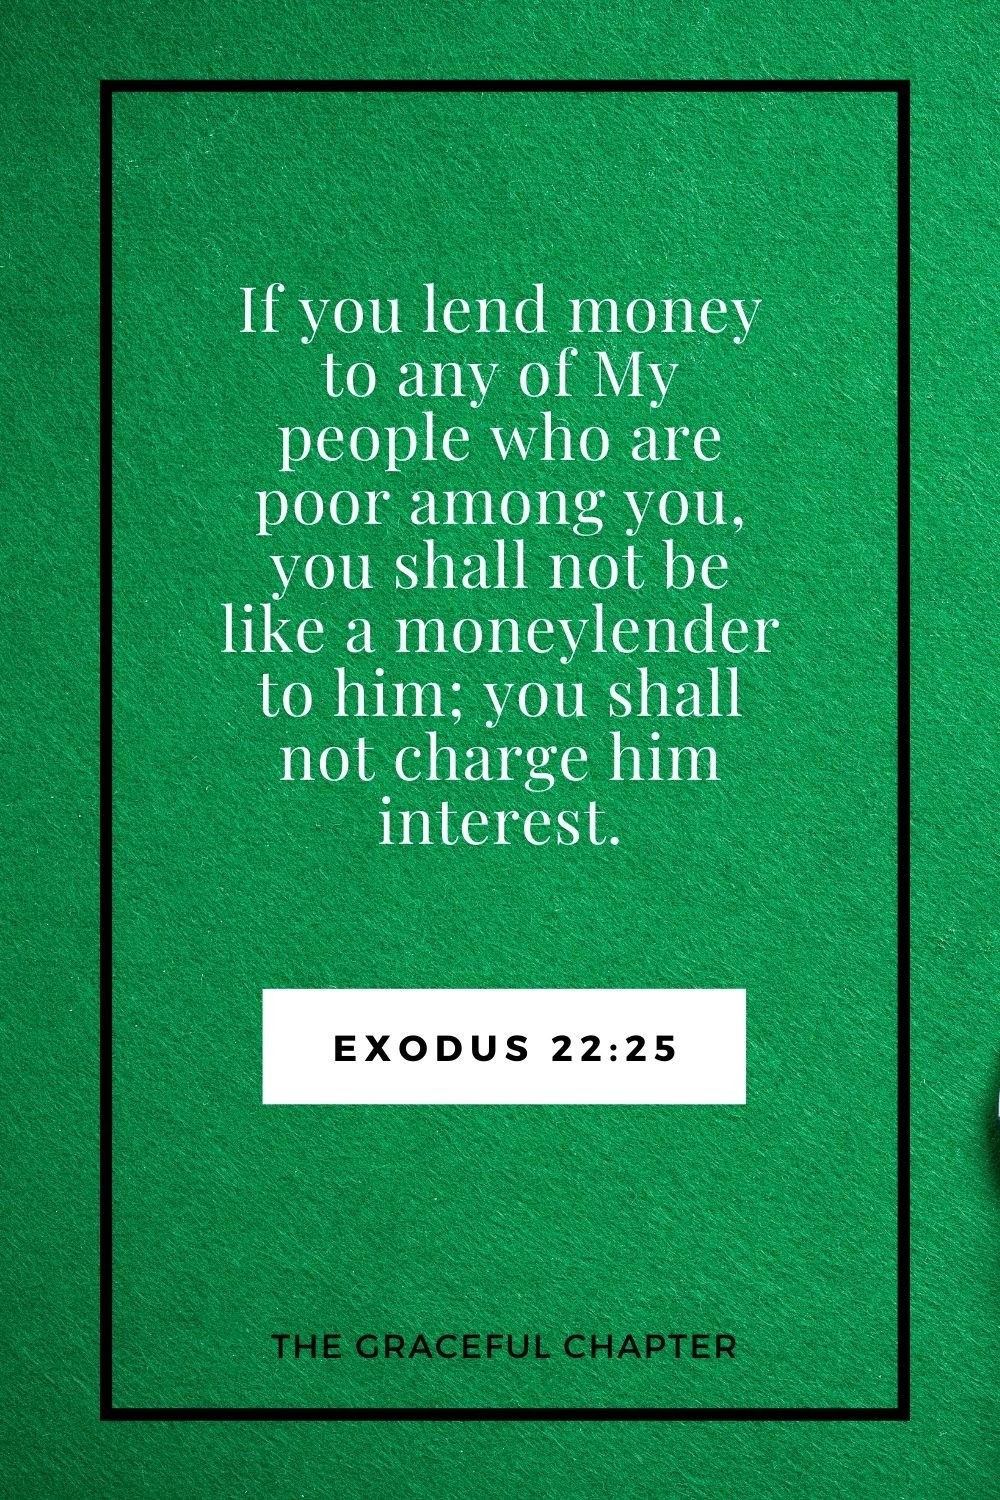 If you lend money to any of My people who are poor among you, you shall not be like a moneylender to him; you shall not charge him interest. Exodus 22:25